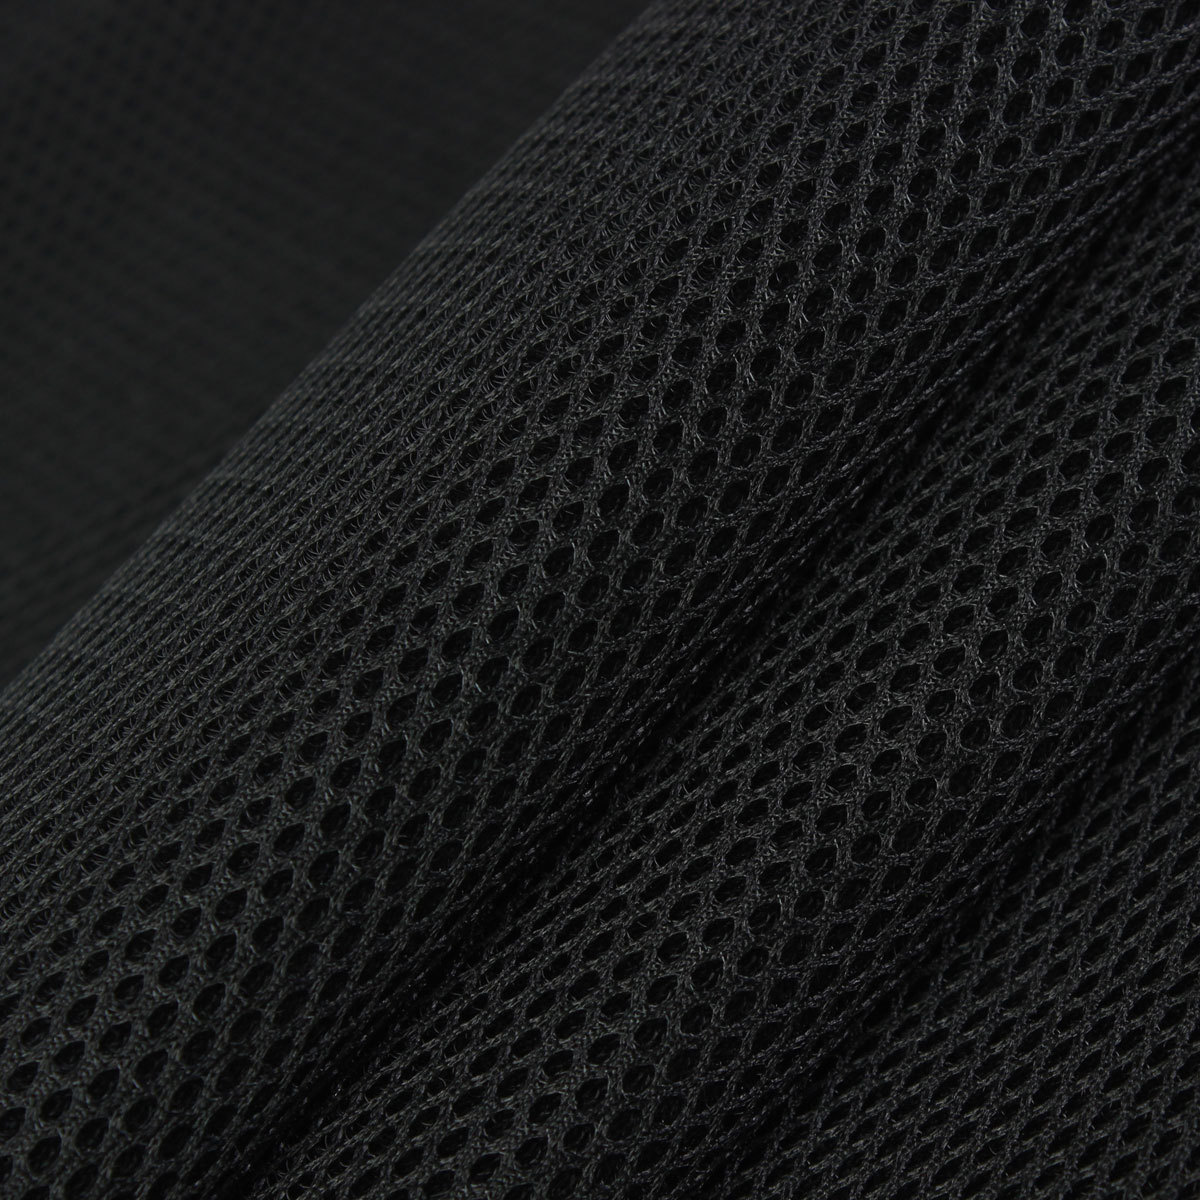 Acoustic Grill Cloth Uk